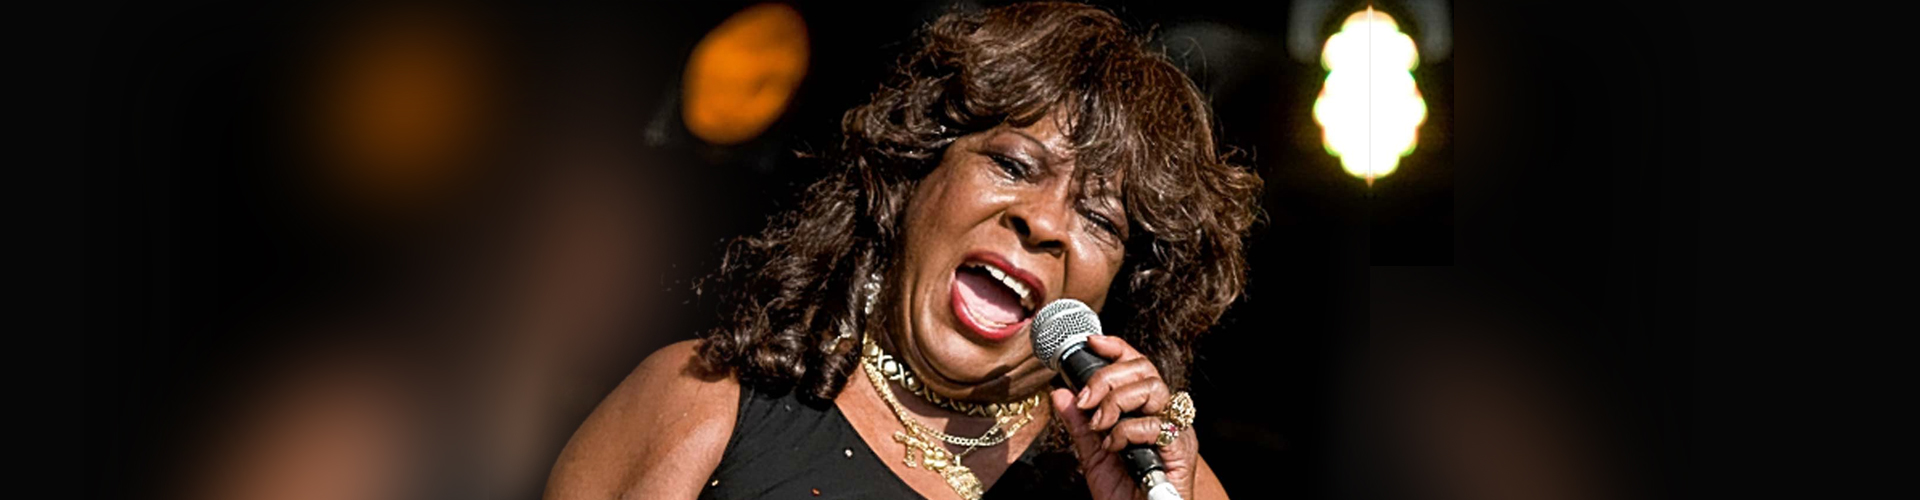 Martha Reeves speaking into microphone